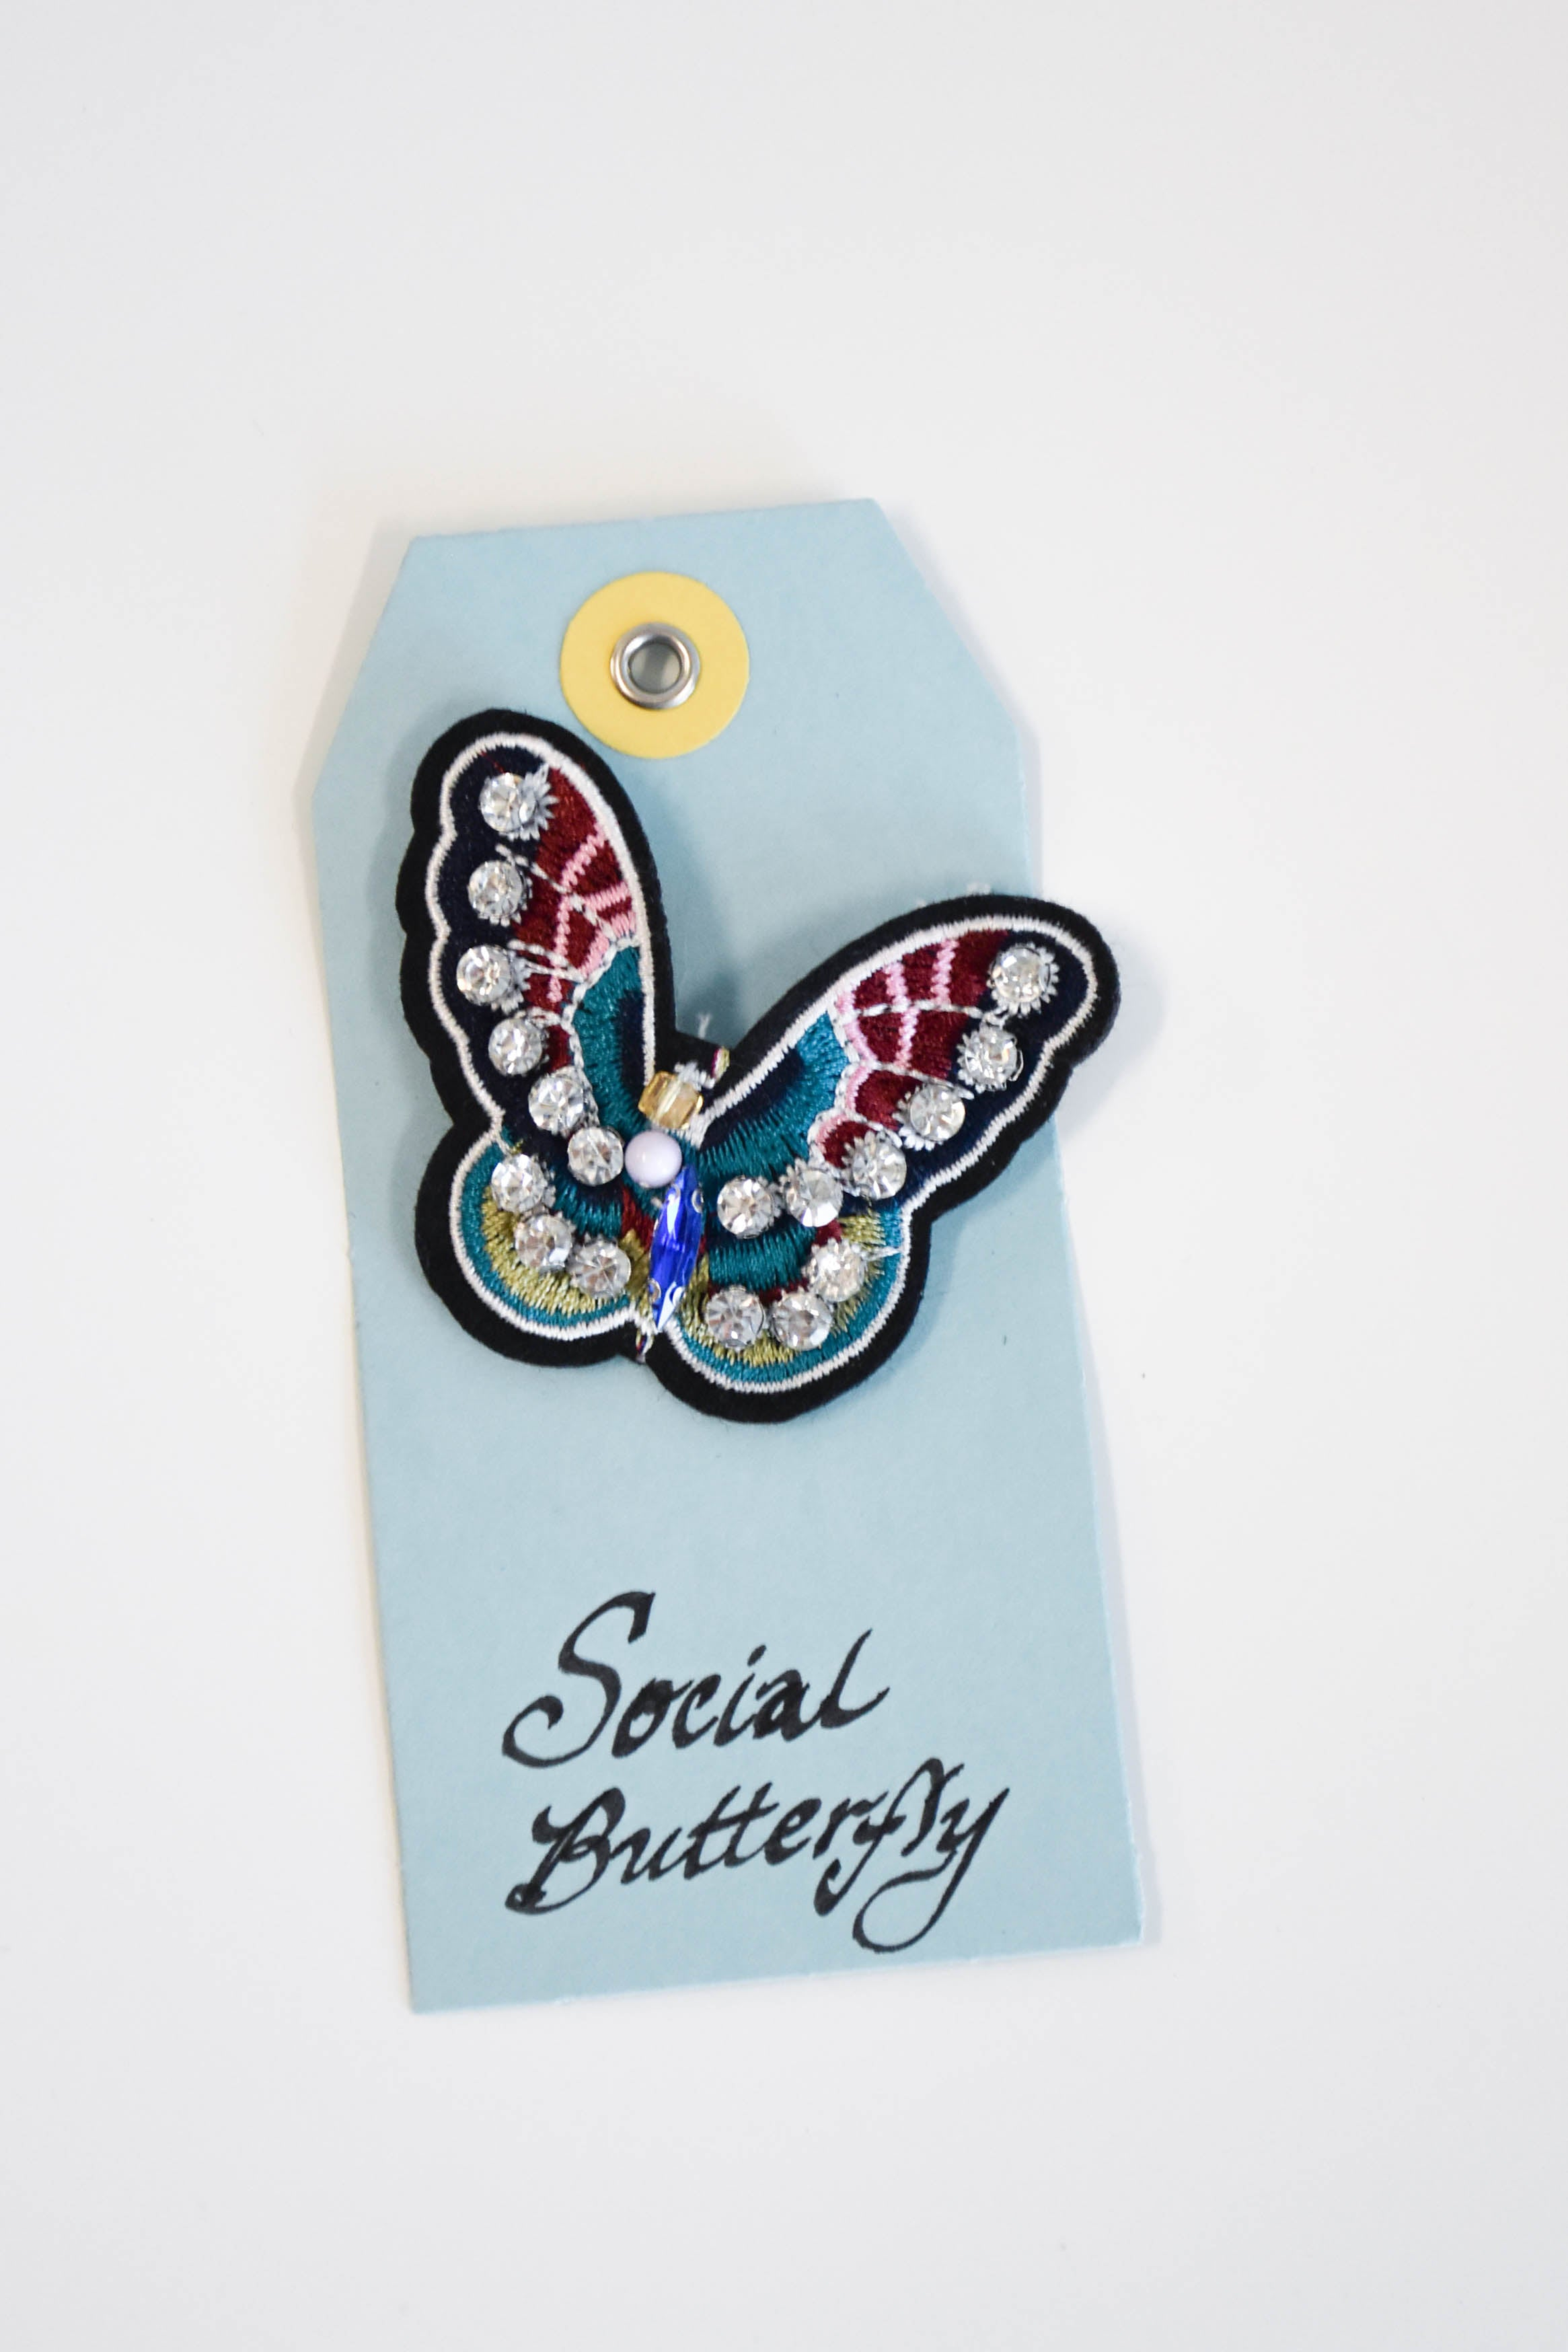 Social Butterflies Patch Pin (Social Butterfly)